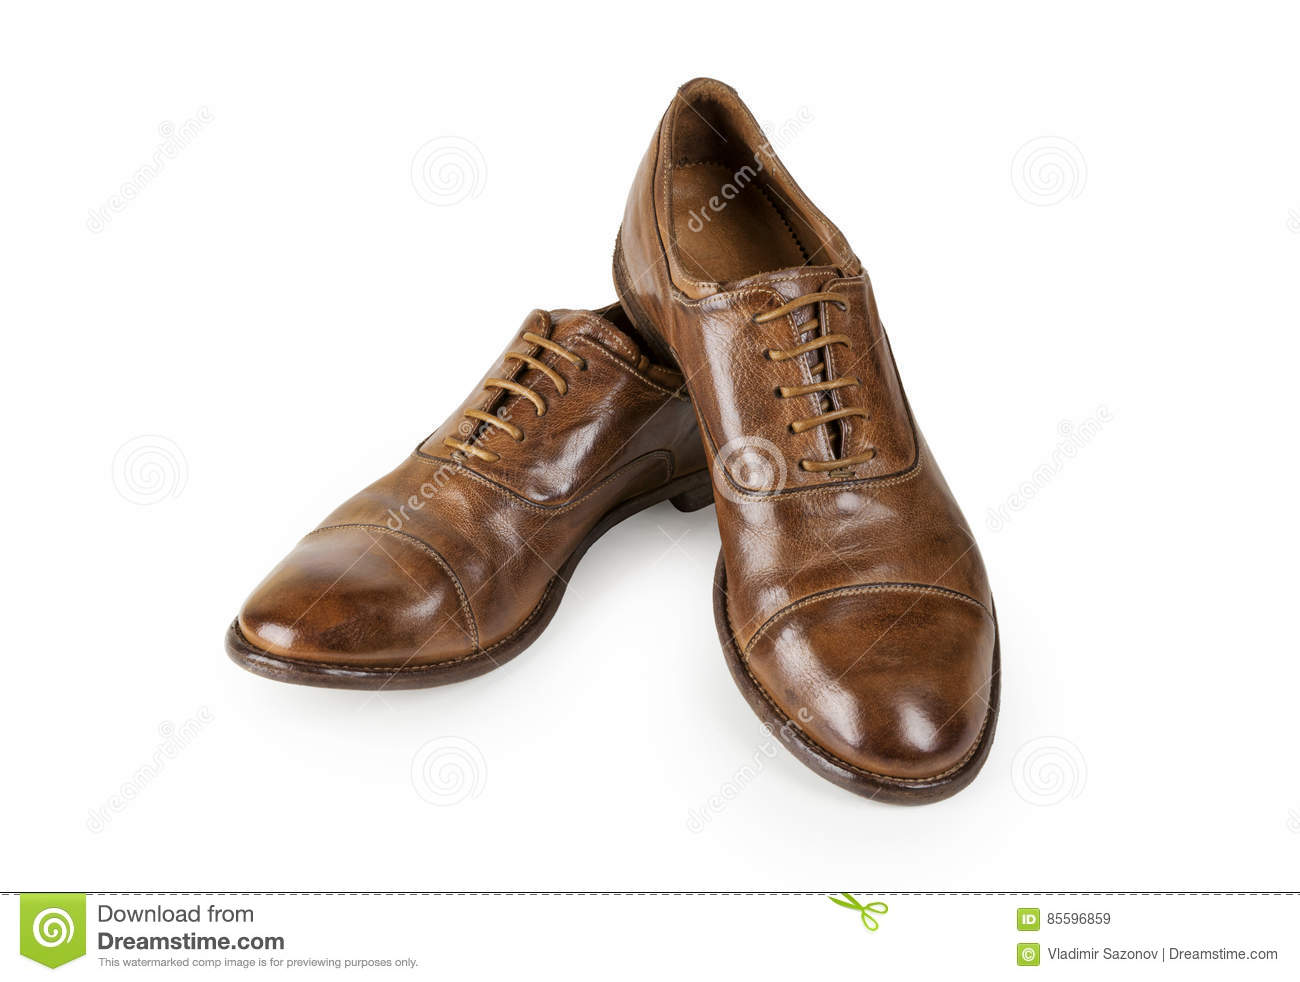 a104b5a58ec4 Pair of brown leather men shoes isolated on white. Men Brown Shoes. Stylish  brown leather shoes. Men`s classic brown leather shoes isolated on white ...